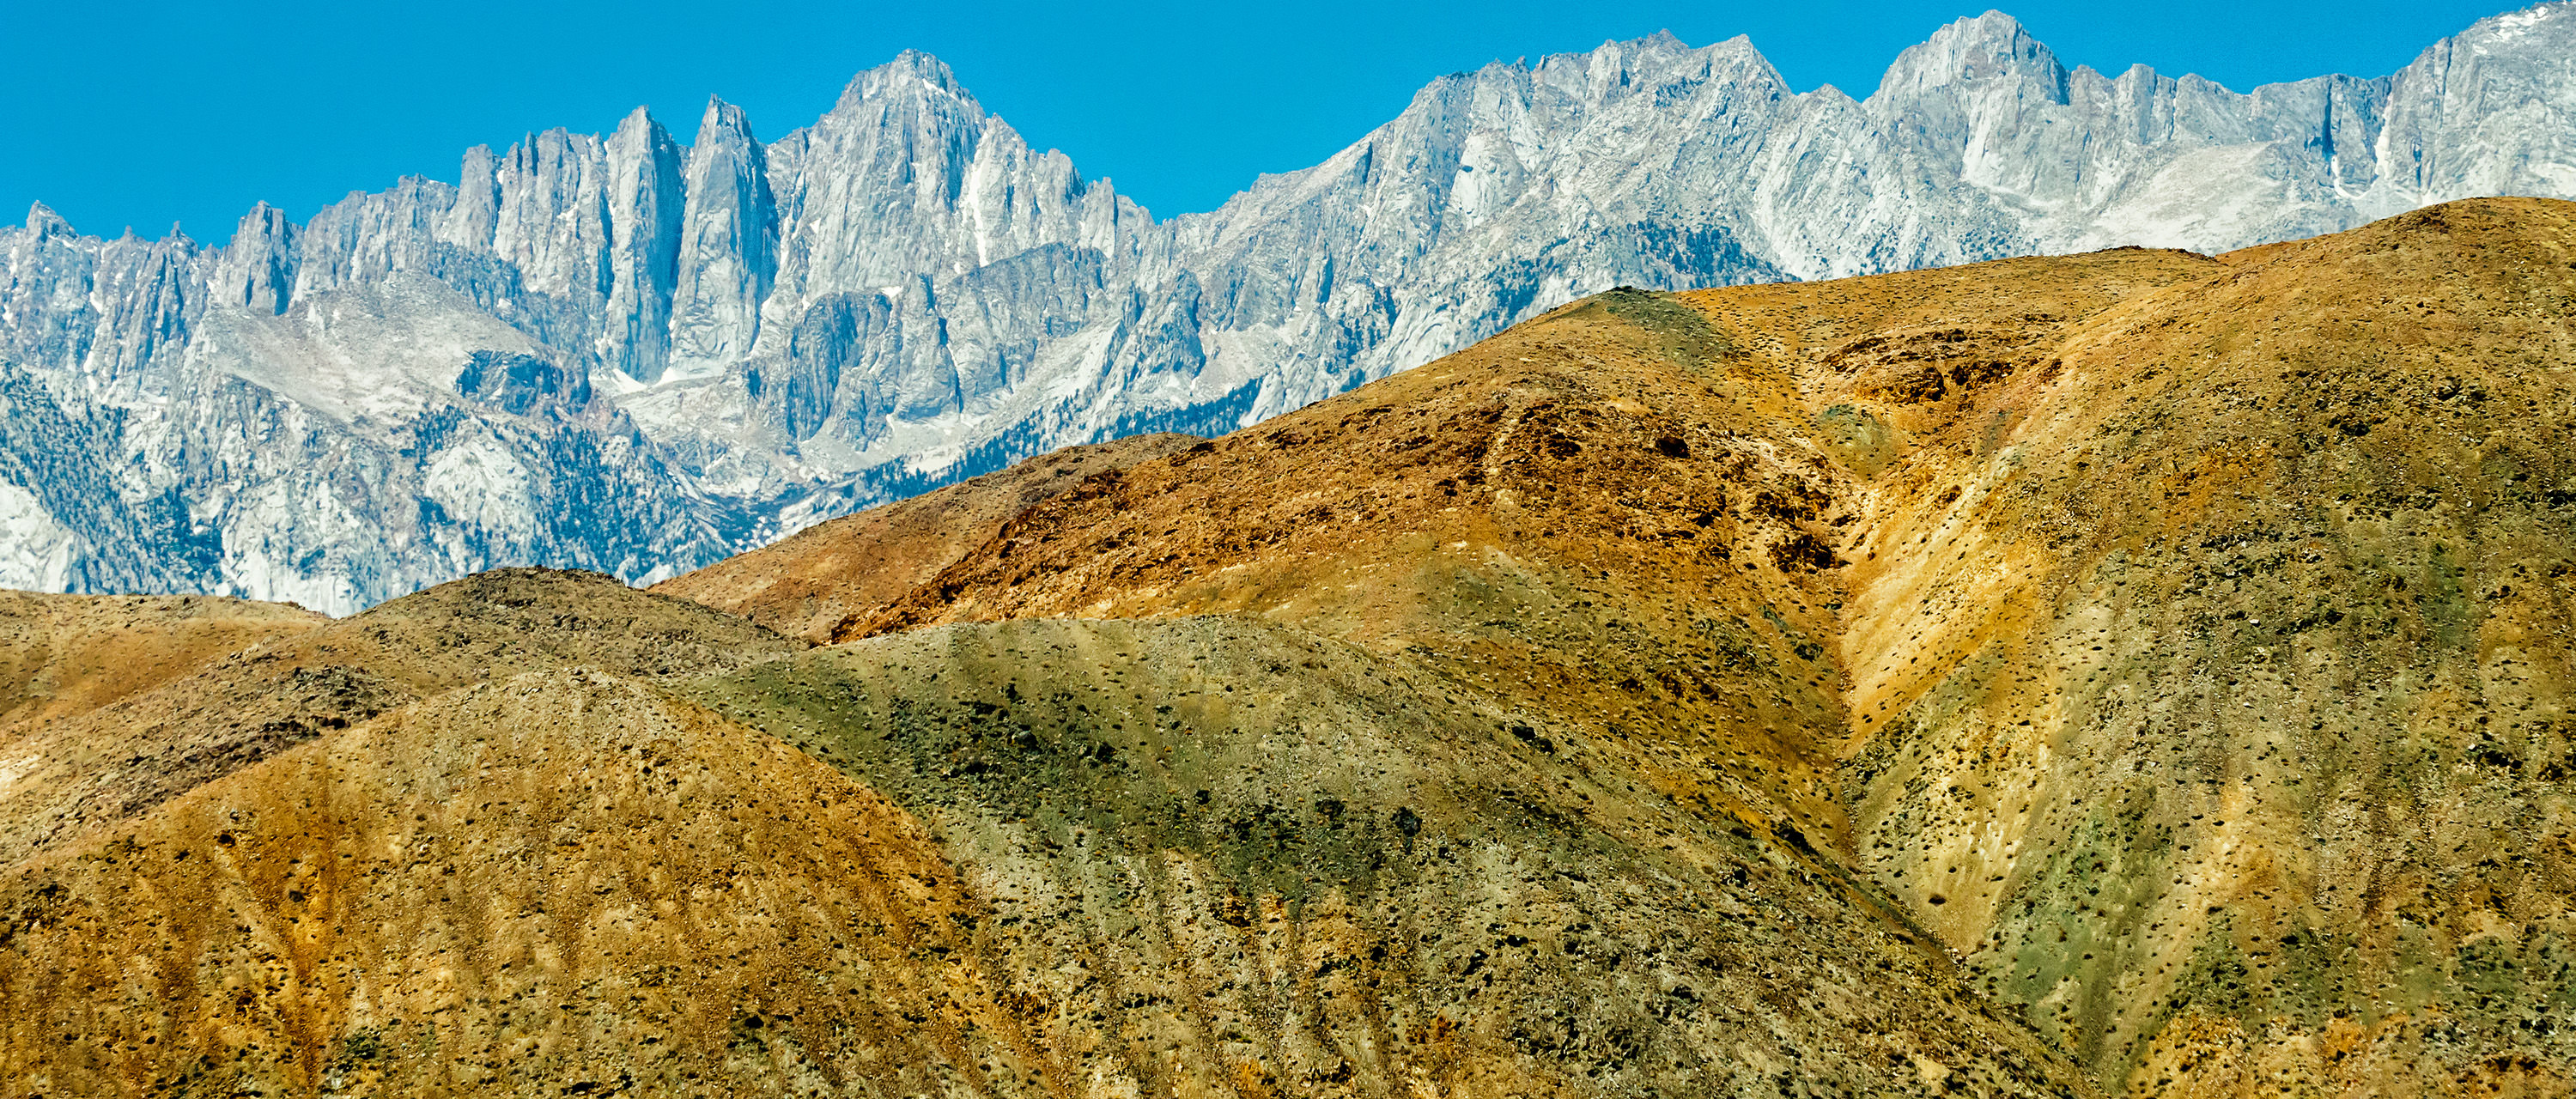 Mount Whitney in Sierra Nevada range